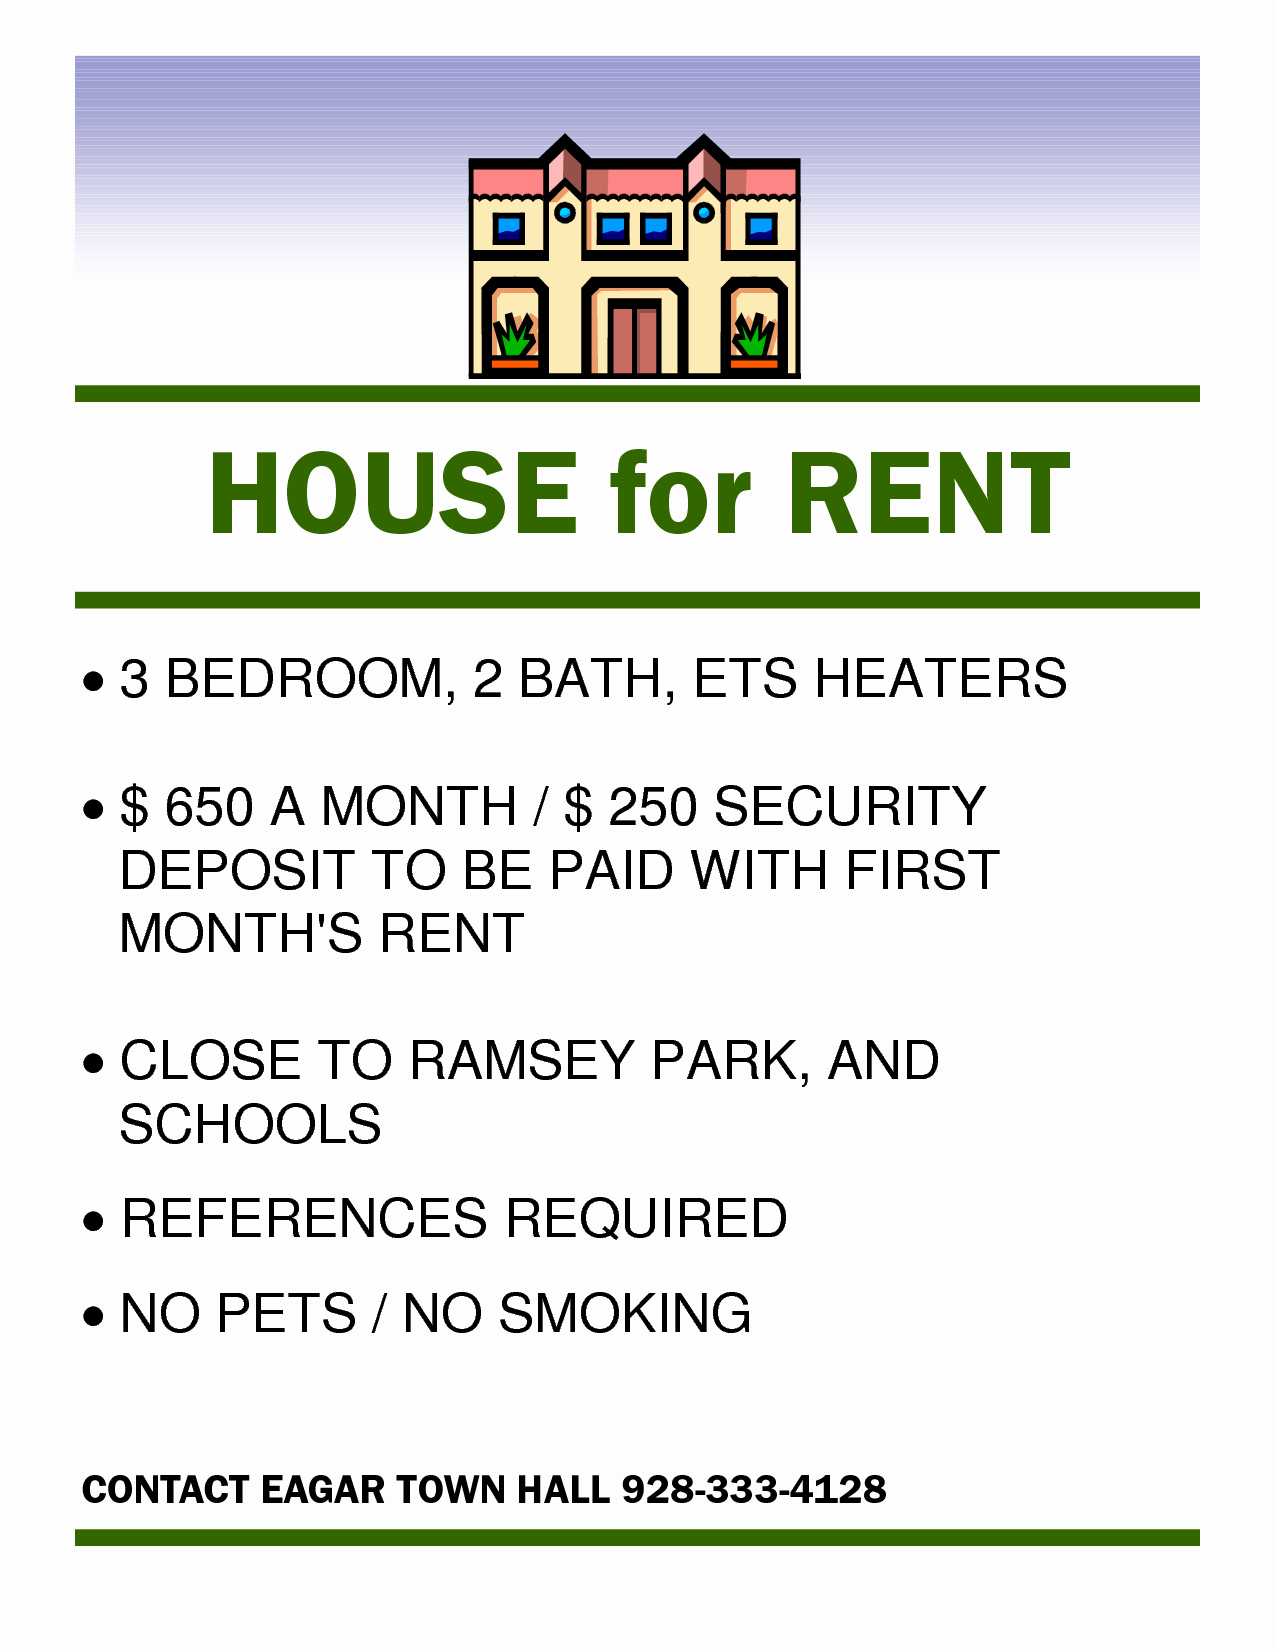 For Rent Flyer Template Free Awesome 9 Home for Rent Flyer Free Psd Free Real Estate